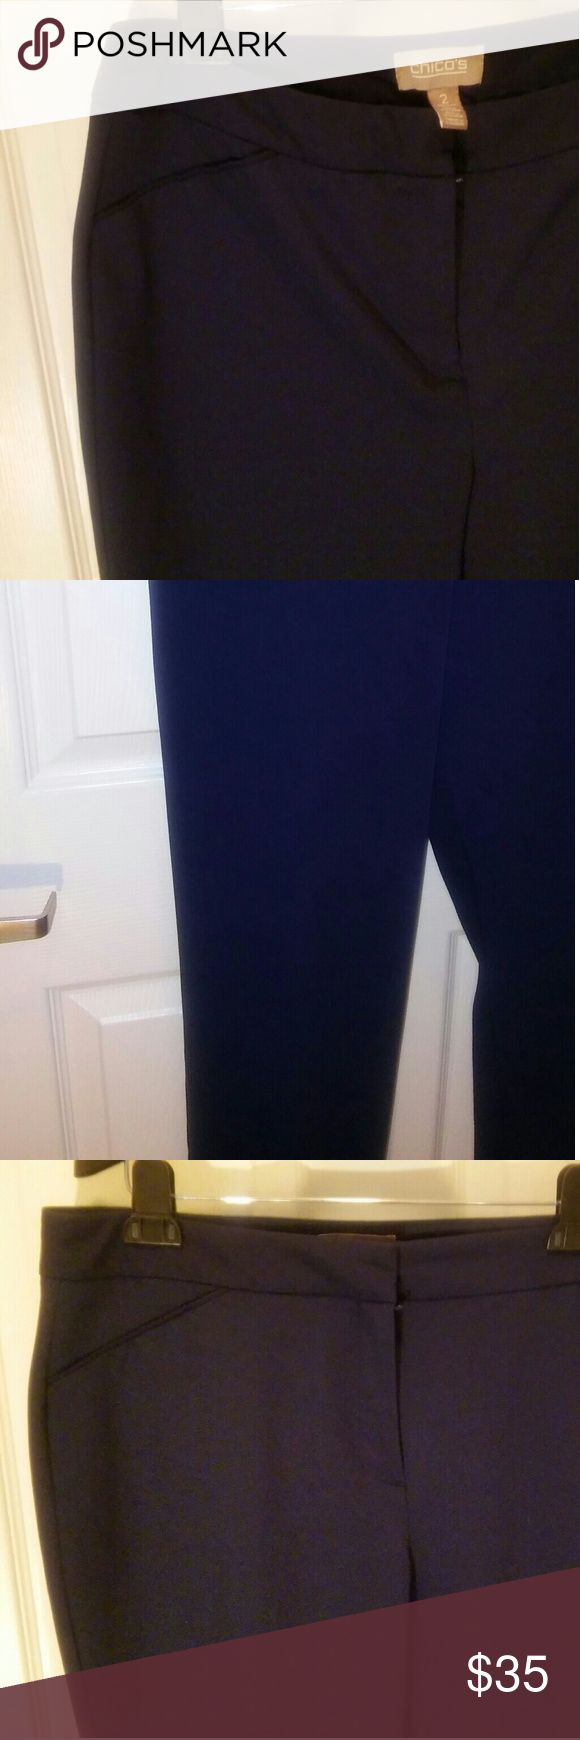 Chico's Navy Blue Dress PANTS SZ 12 (Chico's SZ 2) These are a very flattering nazy blue dress pant. They have an inner hook and eye and zipper closure, front diagonal slit pockets on each side and one horizontal slit pocket on the left rear. For additional photos or questions, please contact me. Chicos Pants